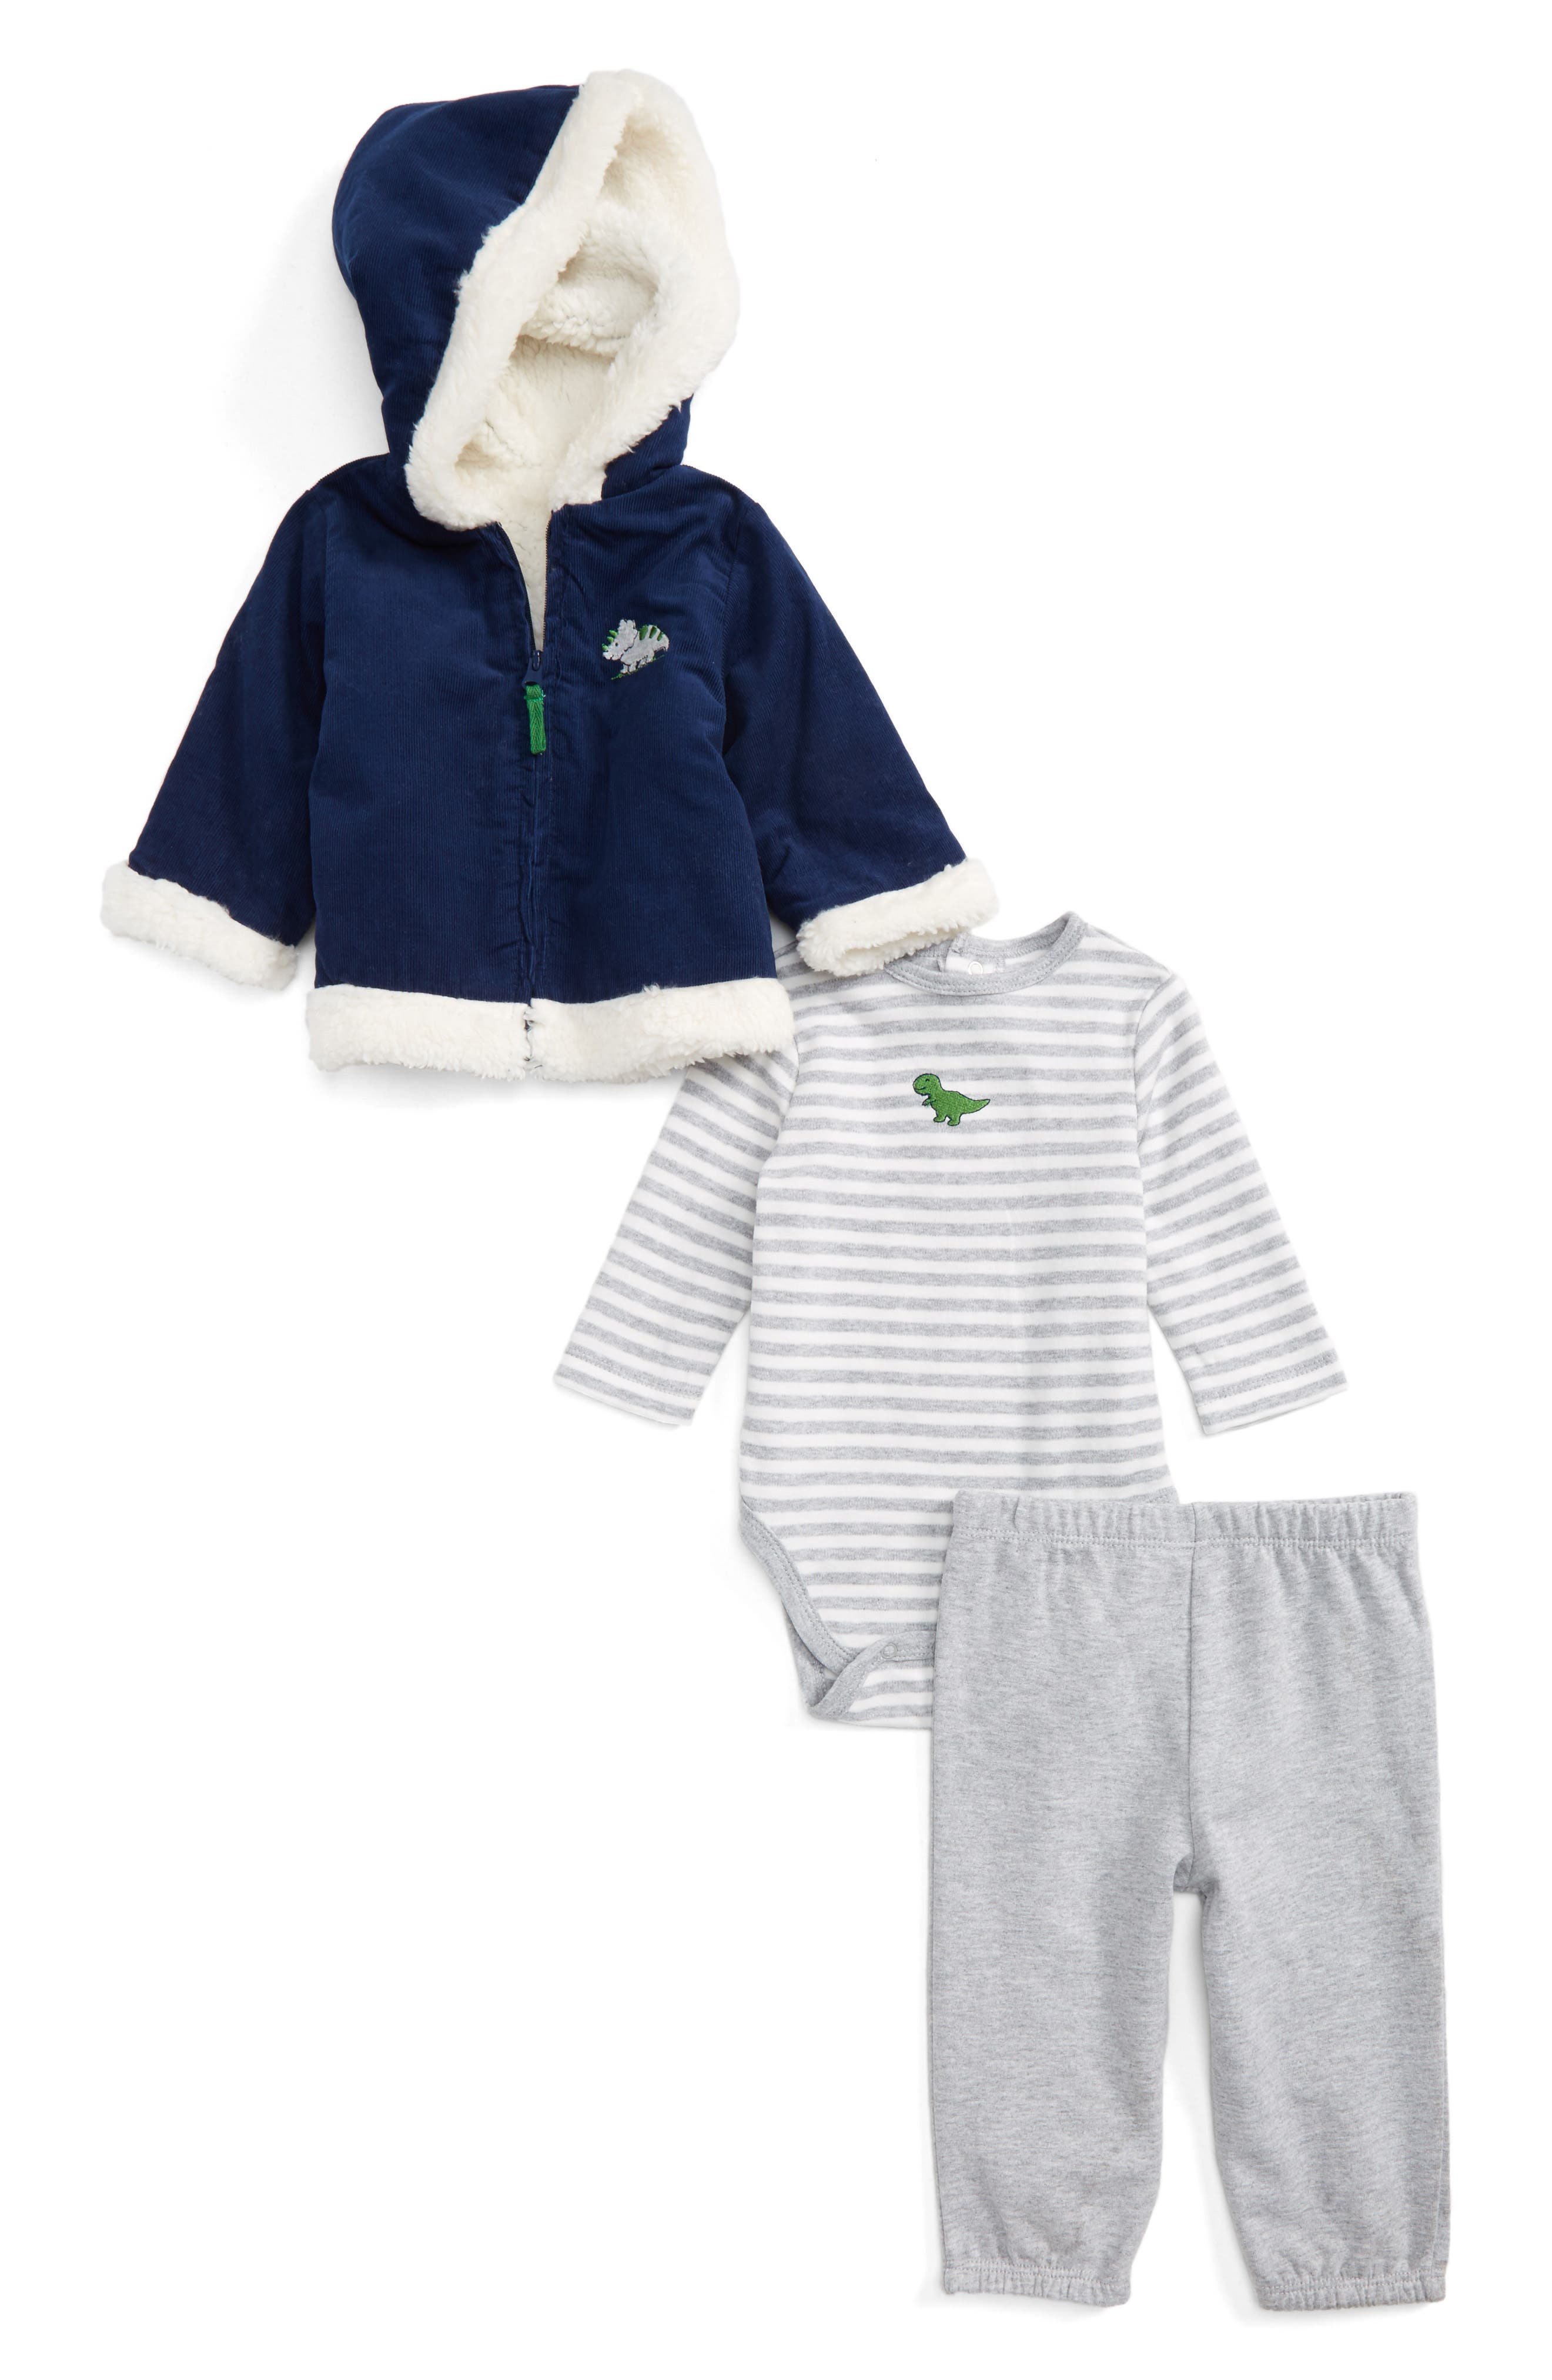 Alternate Image 1 Selected - Little Me Dashing Jacket, Bodysuit & Pants Set (Baby Boys)